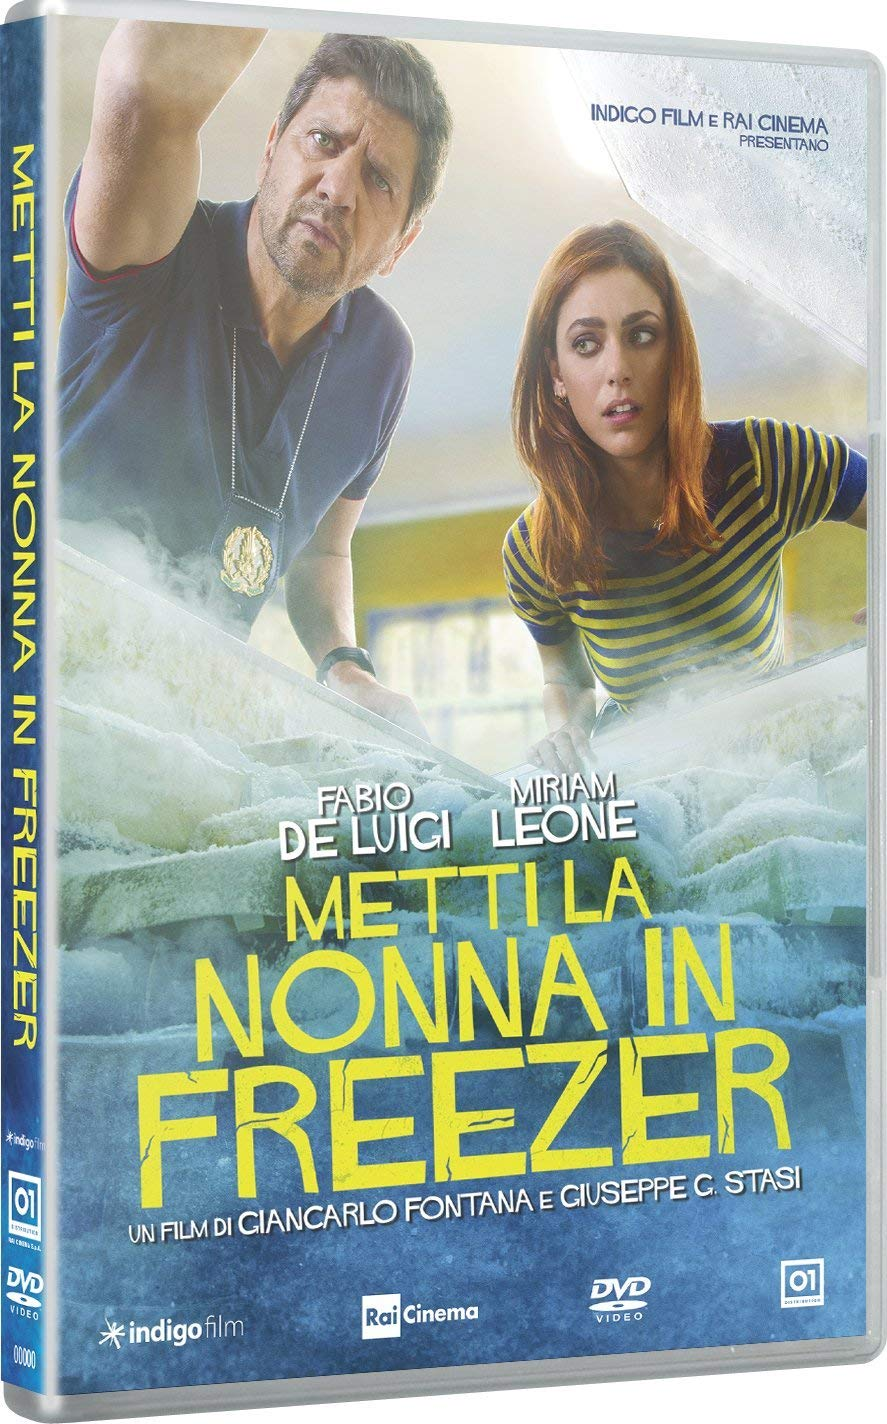 METTI LA NONNA IN FREEZER (DVD)